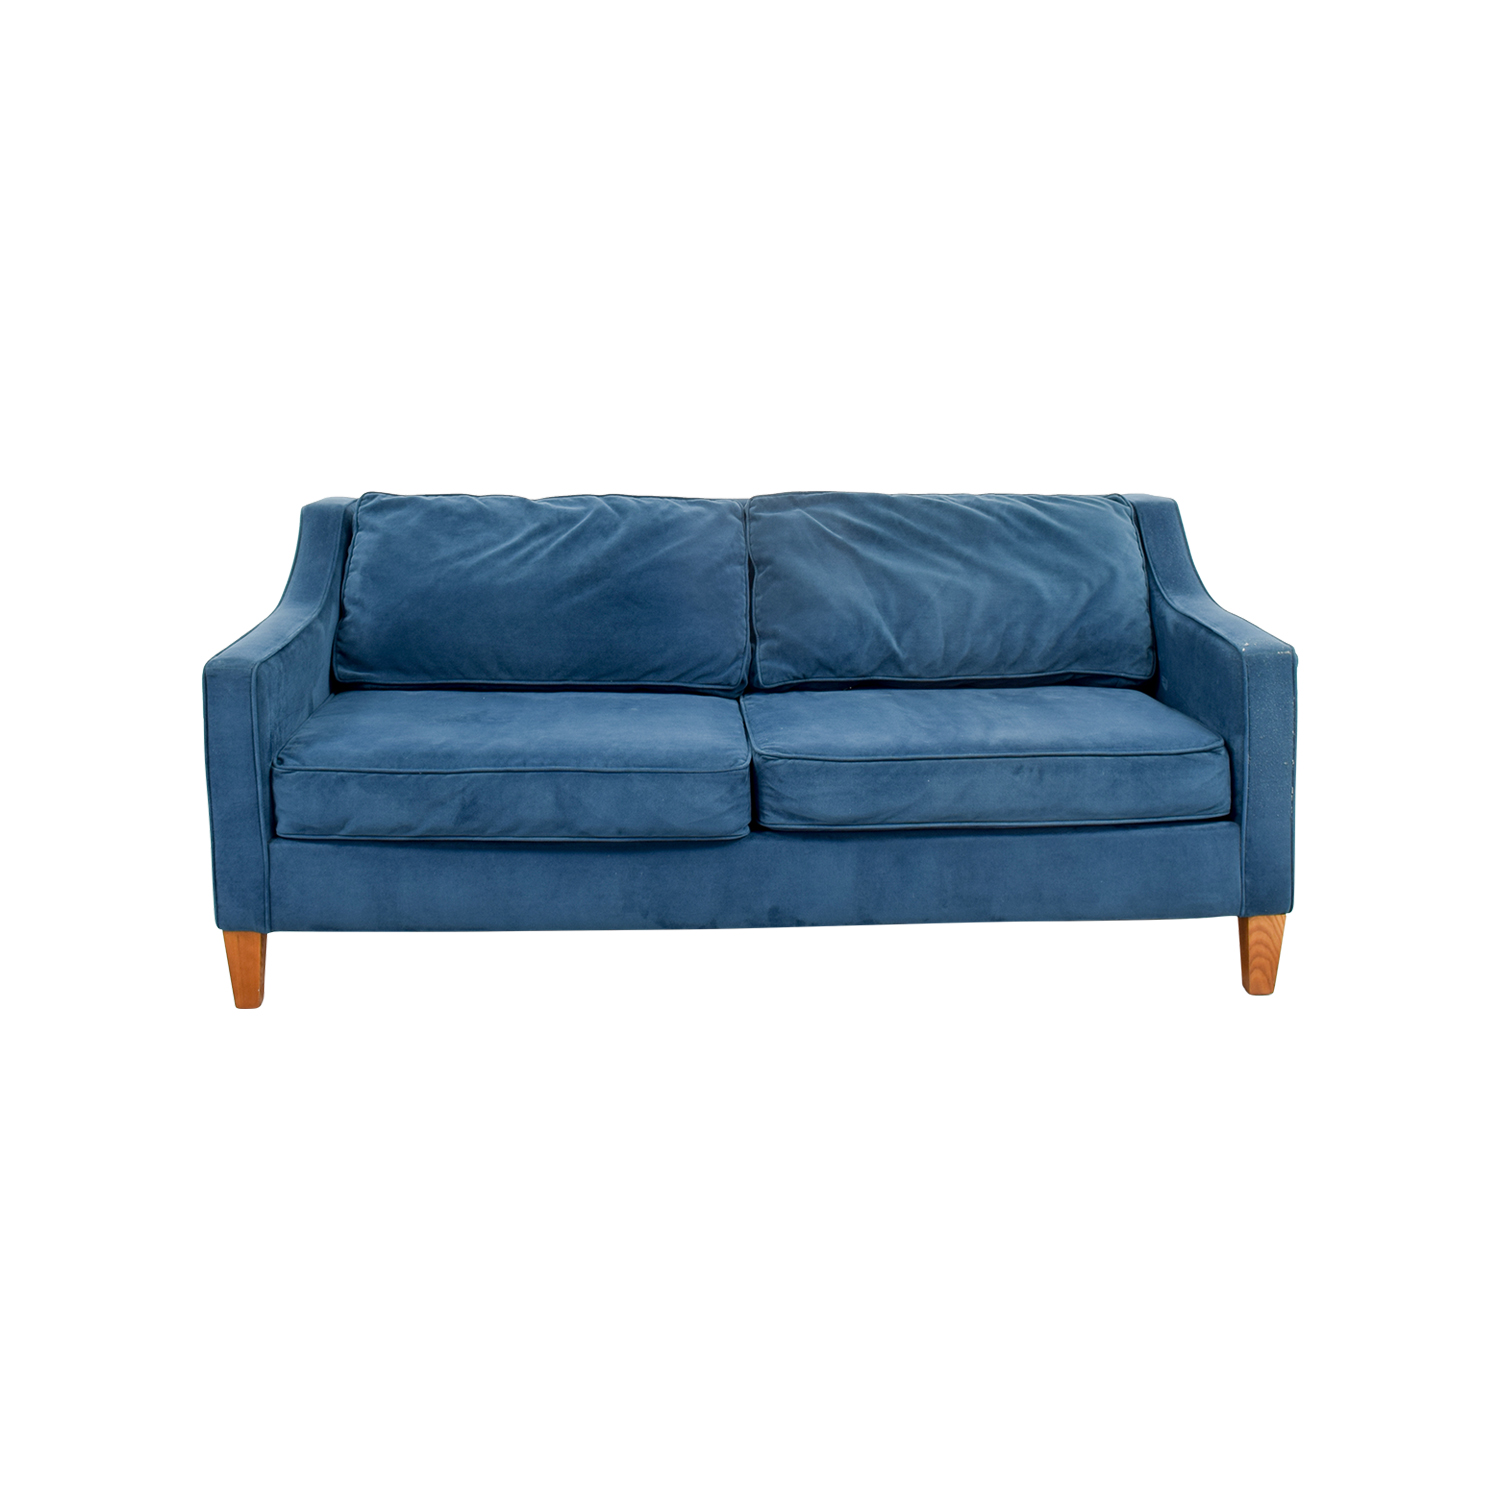 42% OFF West Elm West Elm Paidge Loveseat Sofas